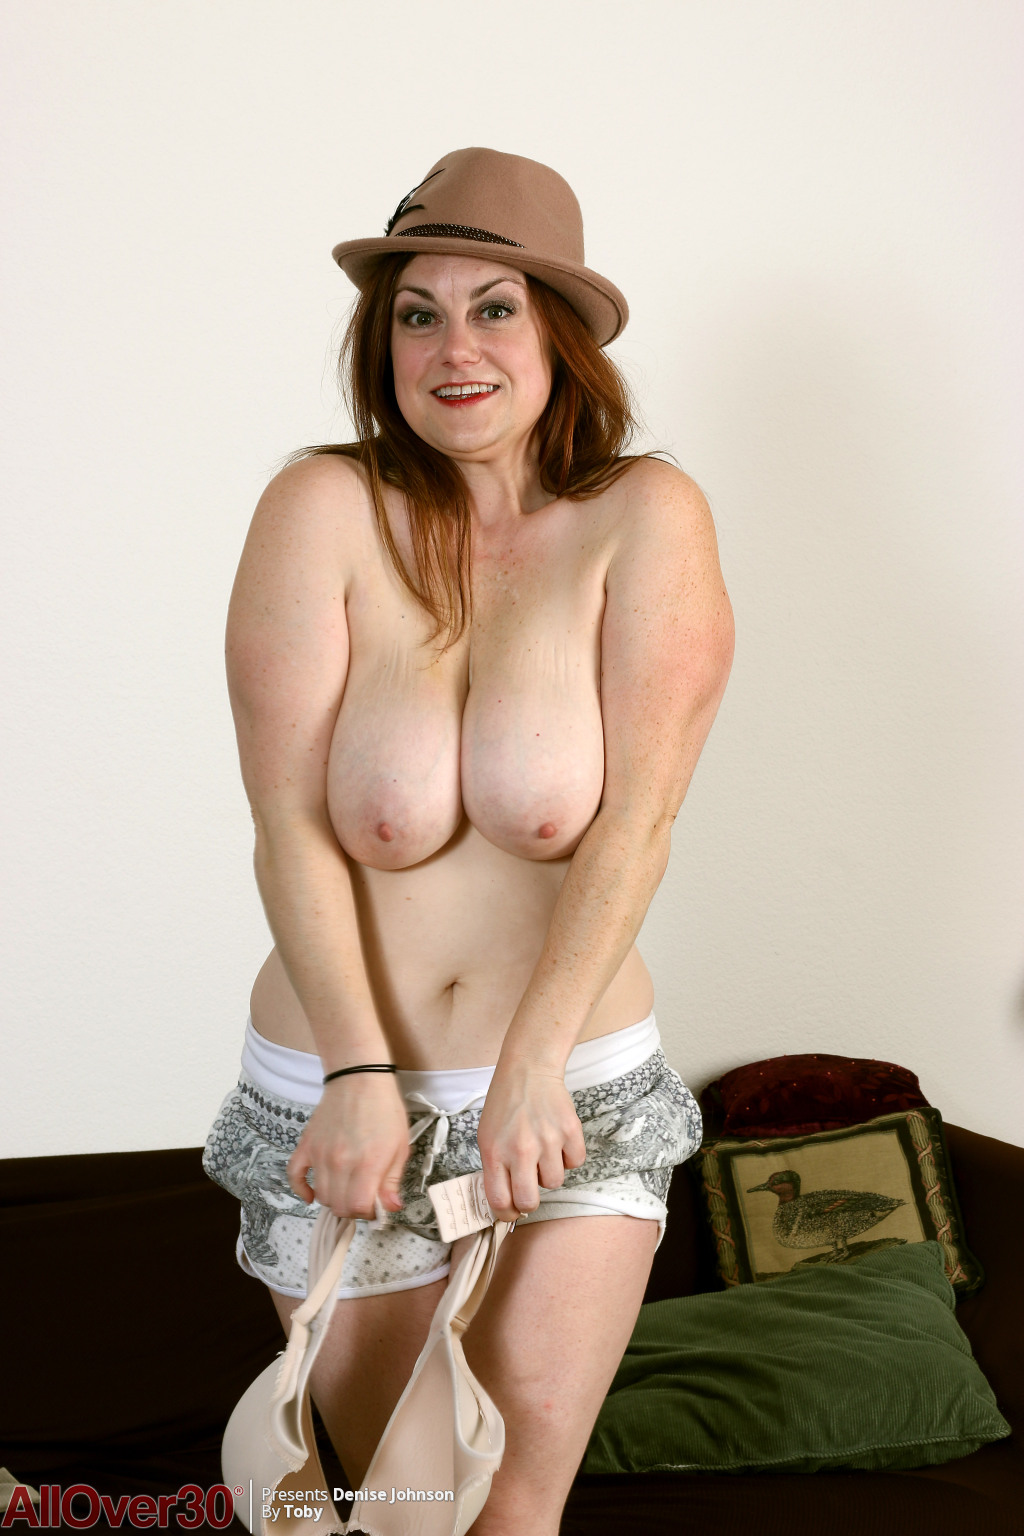 denise-johnson-cute-in-a-hat-06